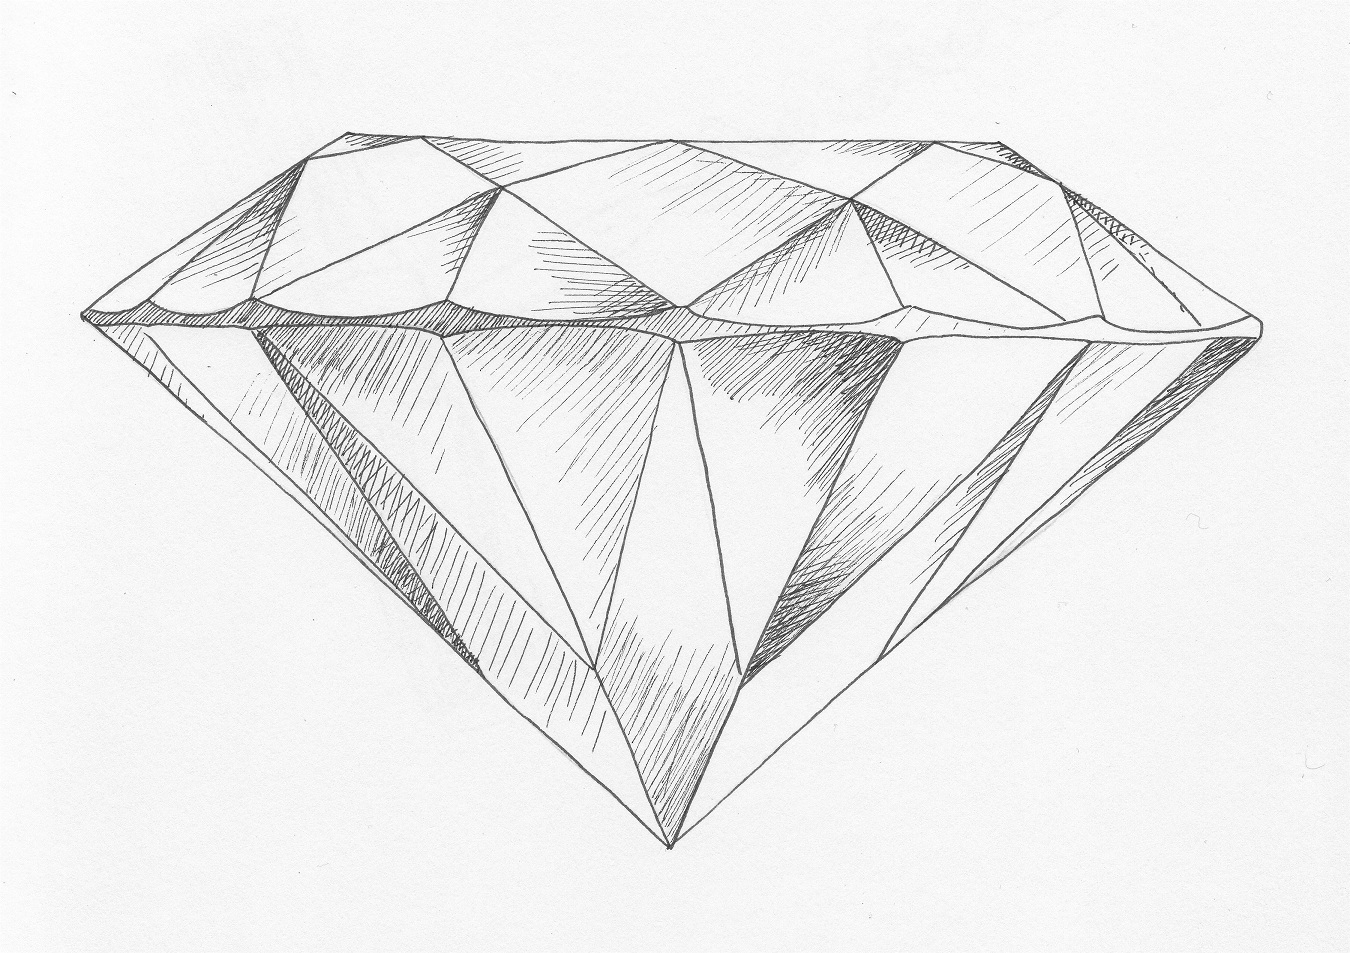 diamond pencil sketch - photo #7